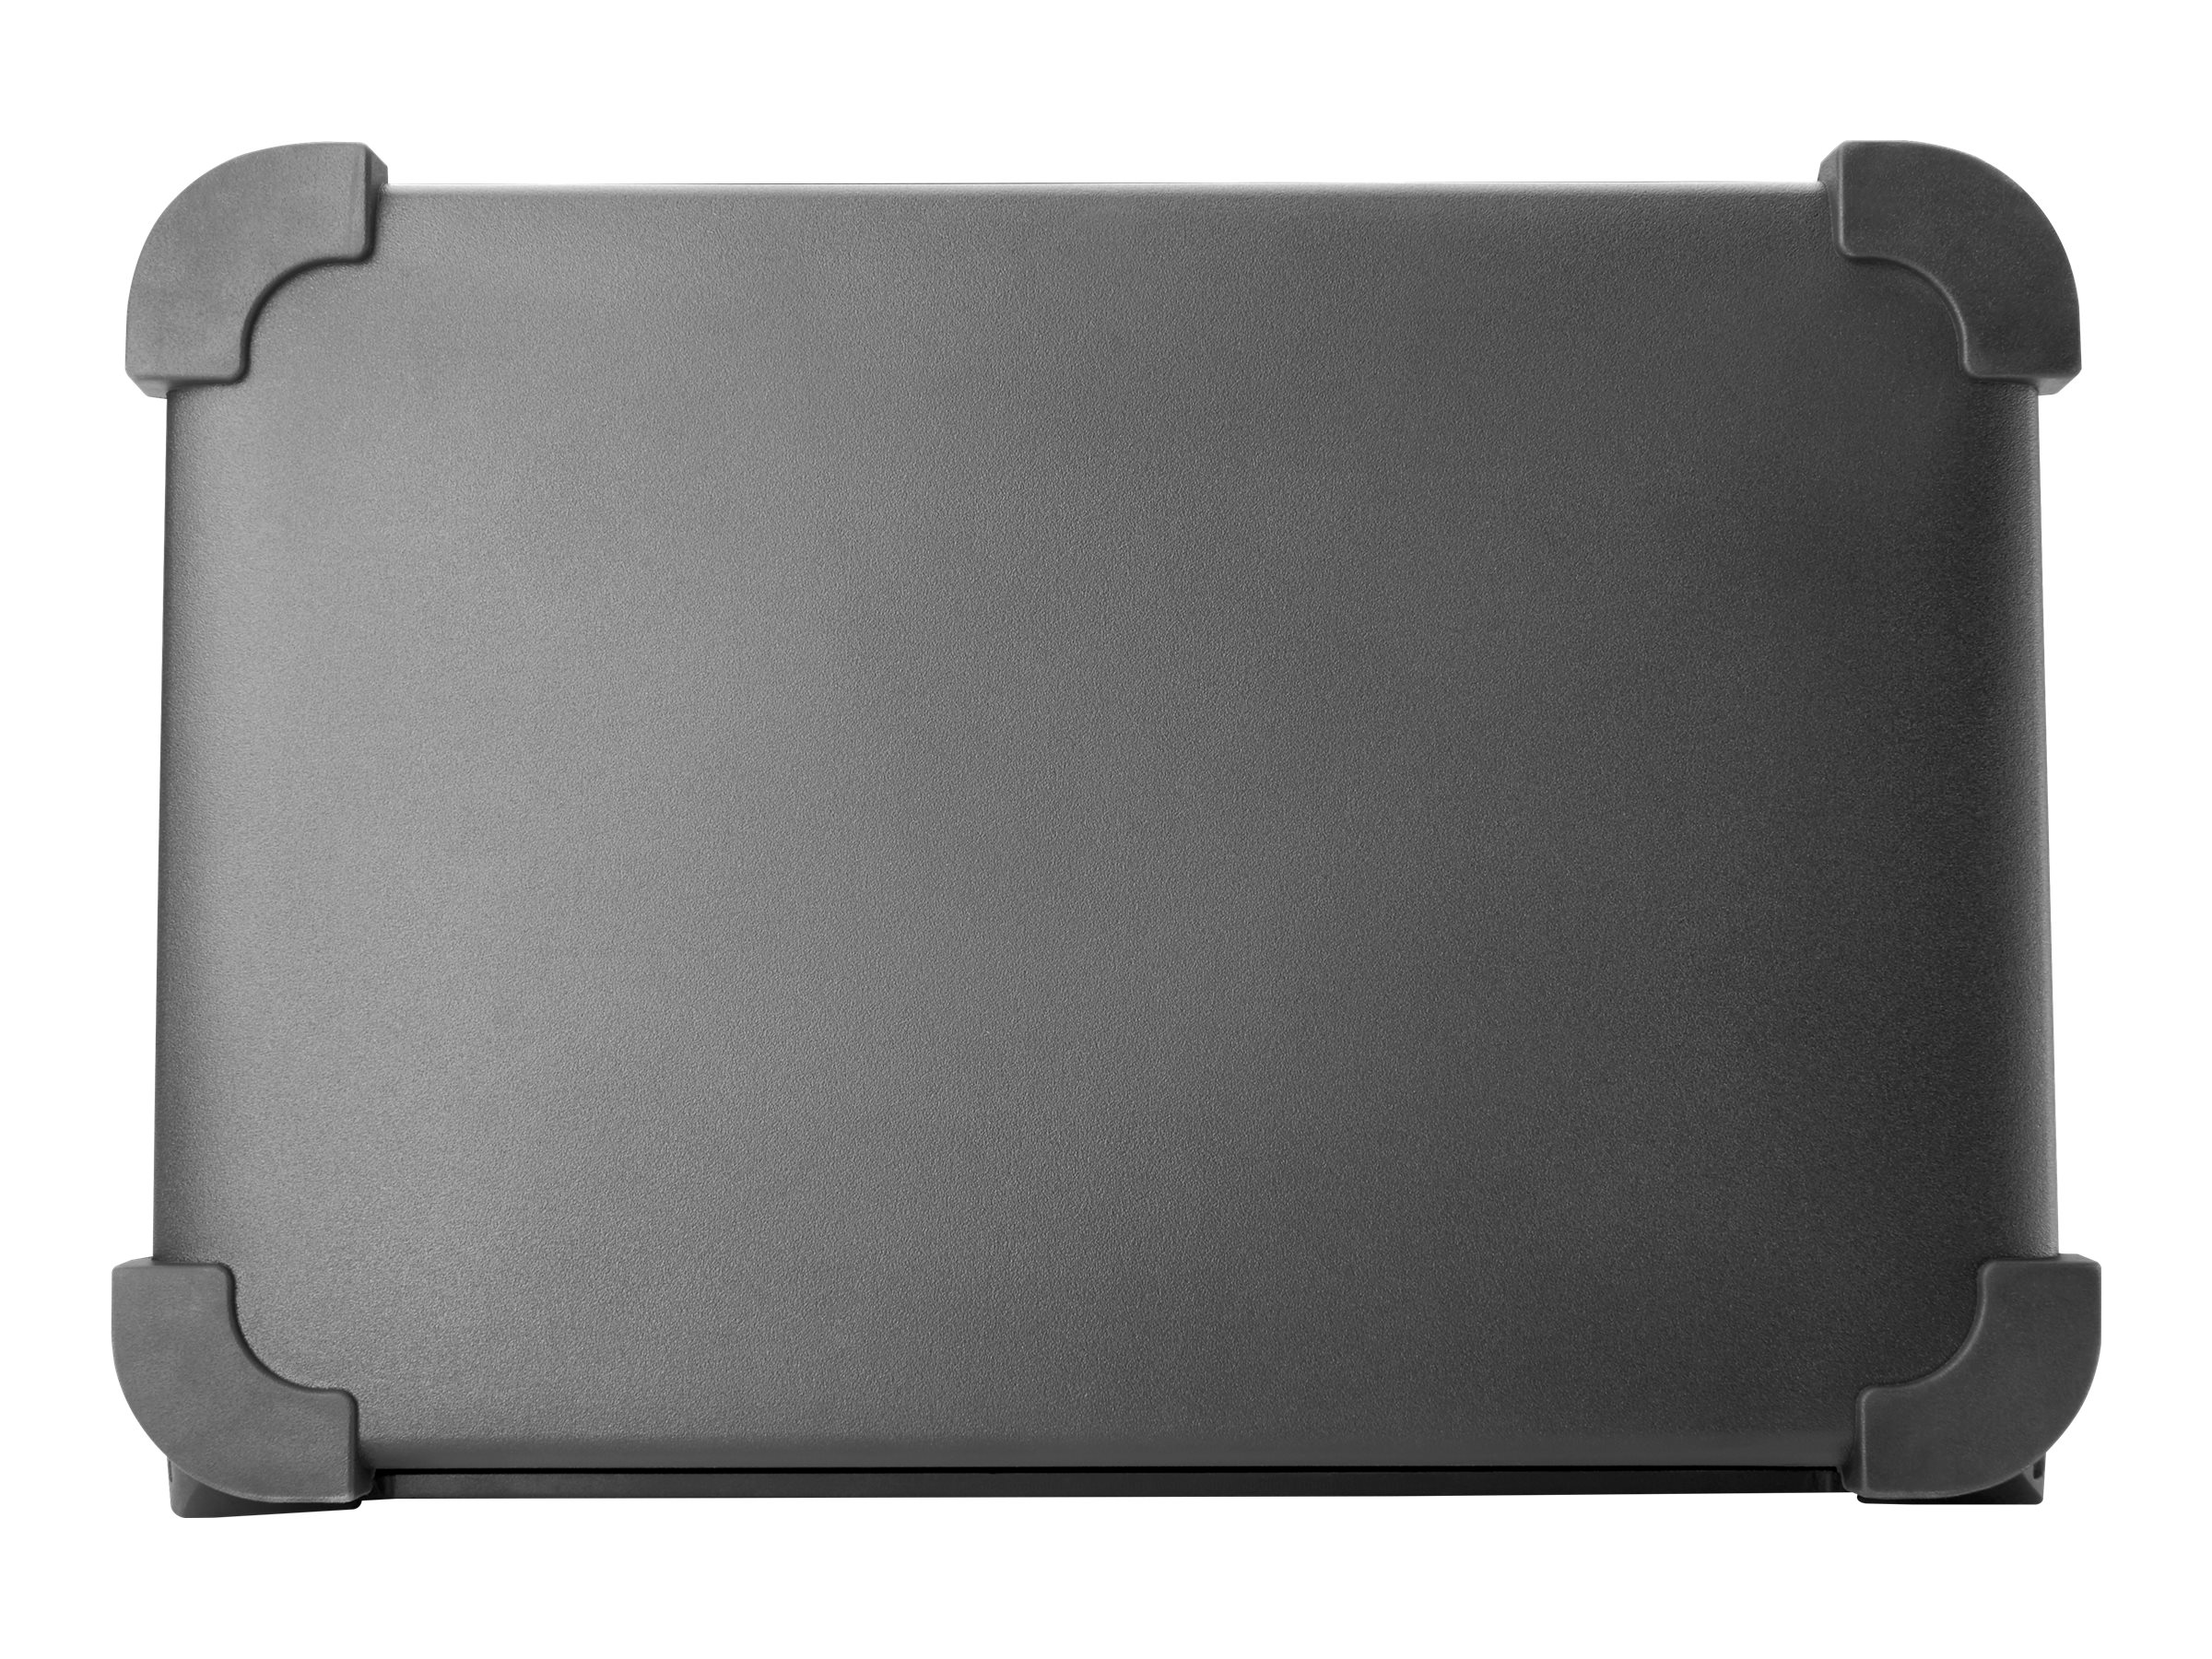 HP Protective Cover for Chromebook 11 G3